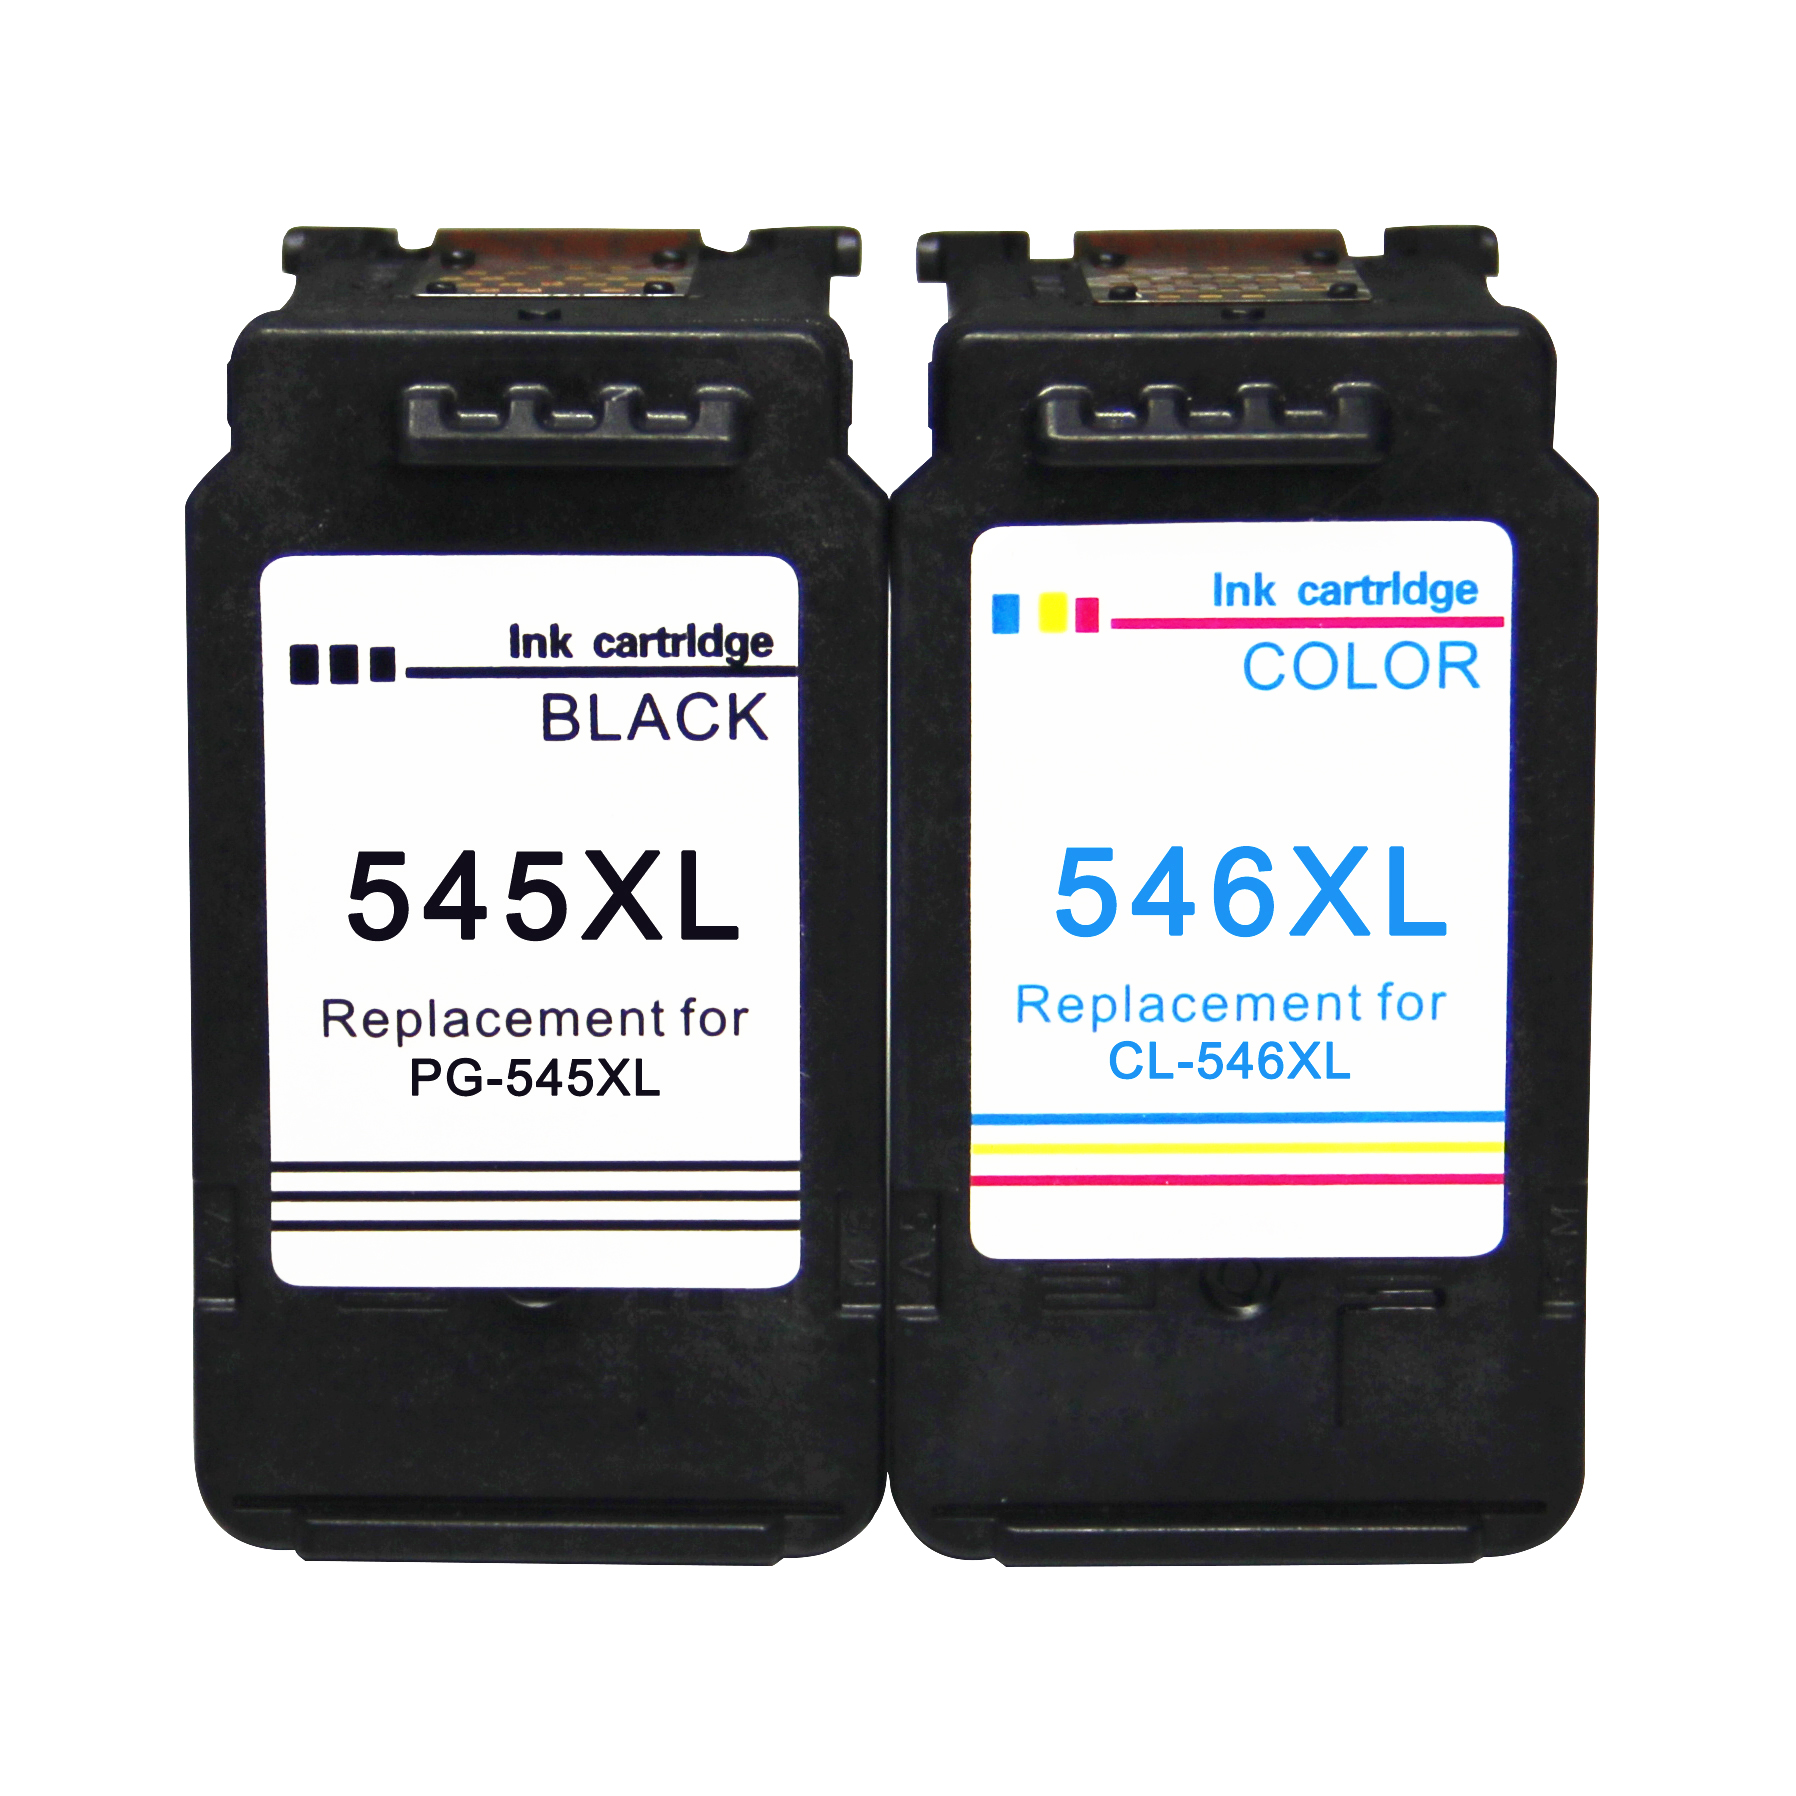 Compatibile PG-545XL CL-546XL per Canon PG 545 CL 546 Cartucce di inchiostro Canon PIXMA MG2550 3050 MX495 IP2850 TS3150 TS3151